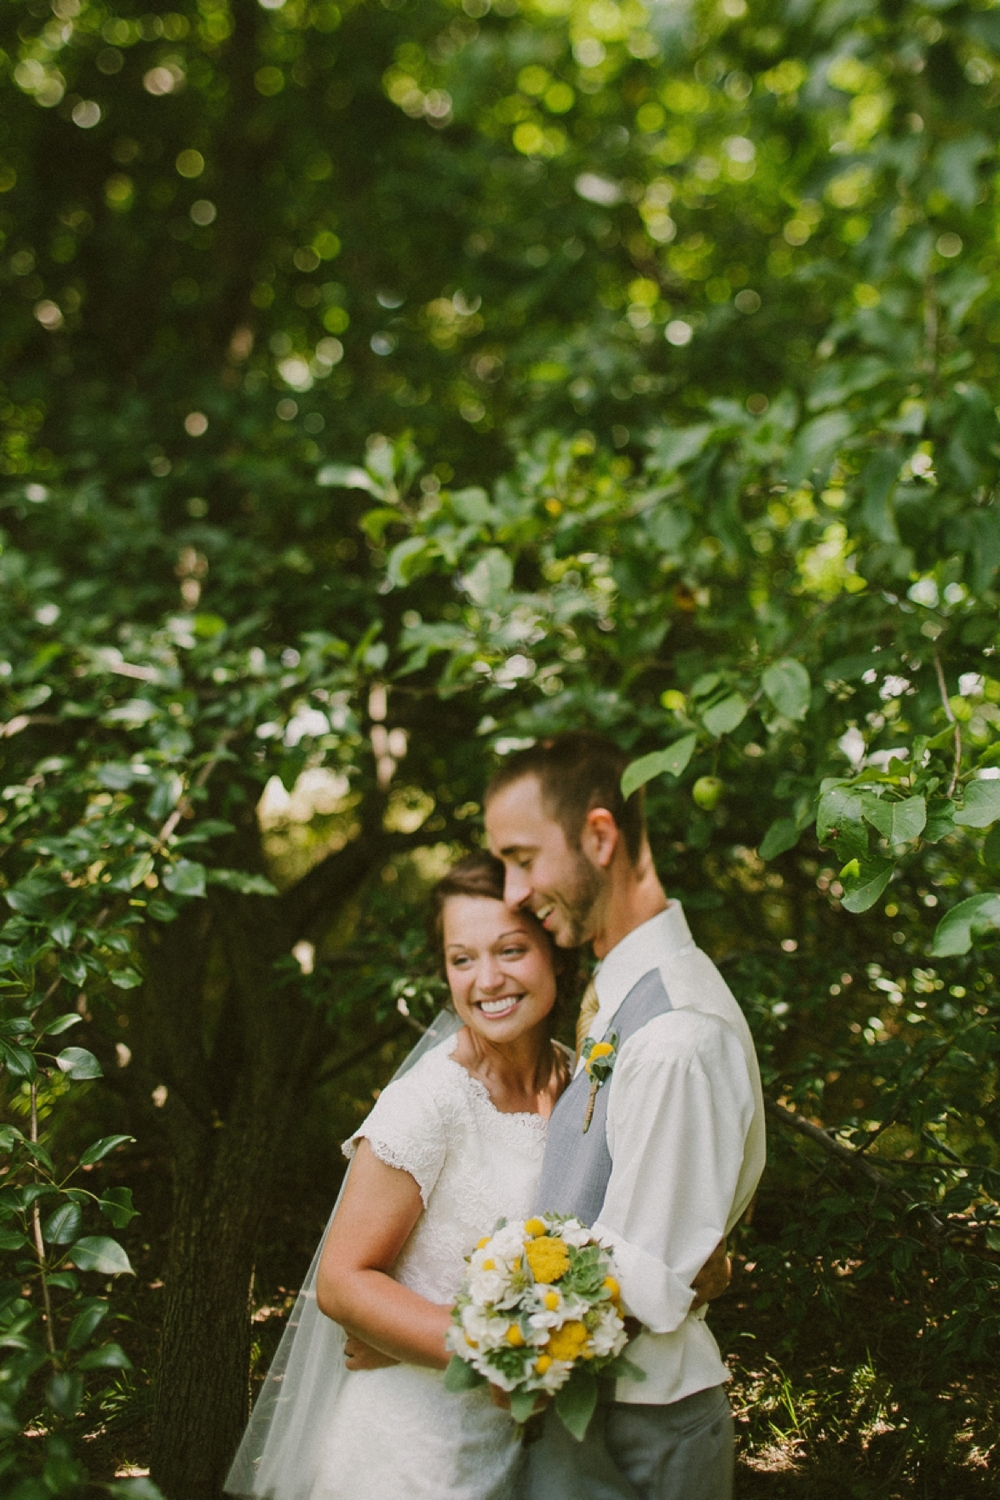 Ashley+joel_0024.jpg